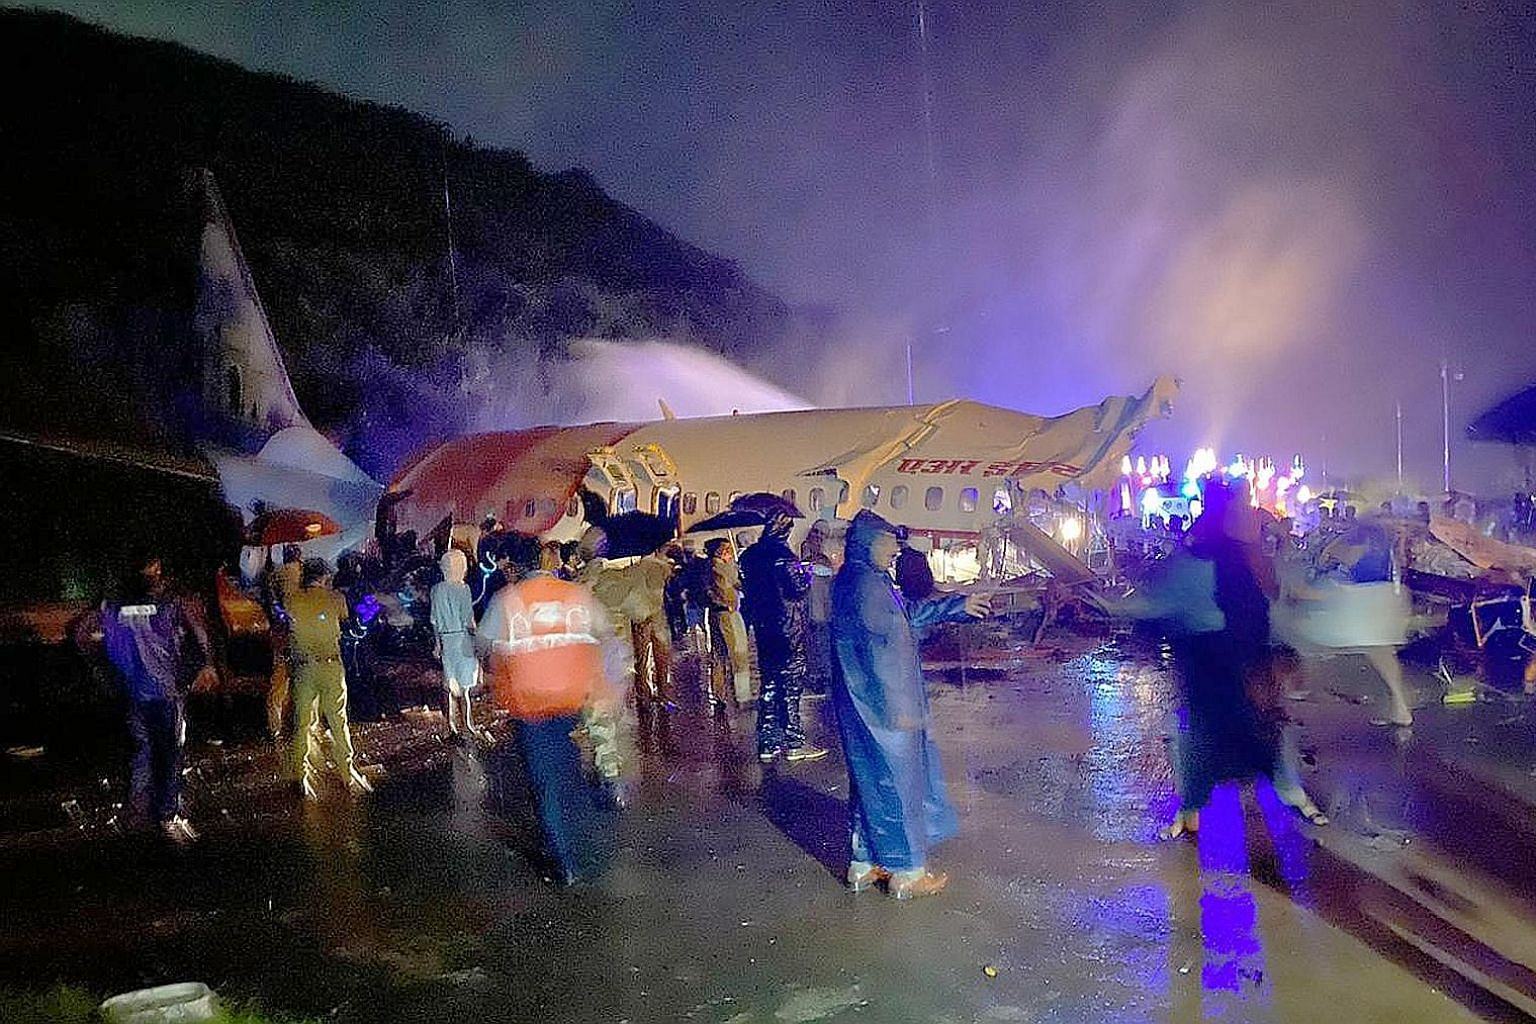 The wreckage of the Air India Express plane that split into two after it overshot the runway at the Calicut International Airport and plunged into a valley in India's southern state of Kerala last night. The Boeing 737 jet was carrying 190 people on